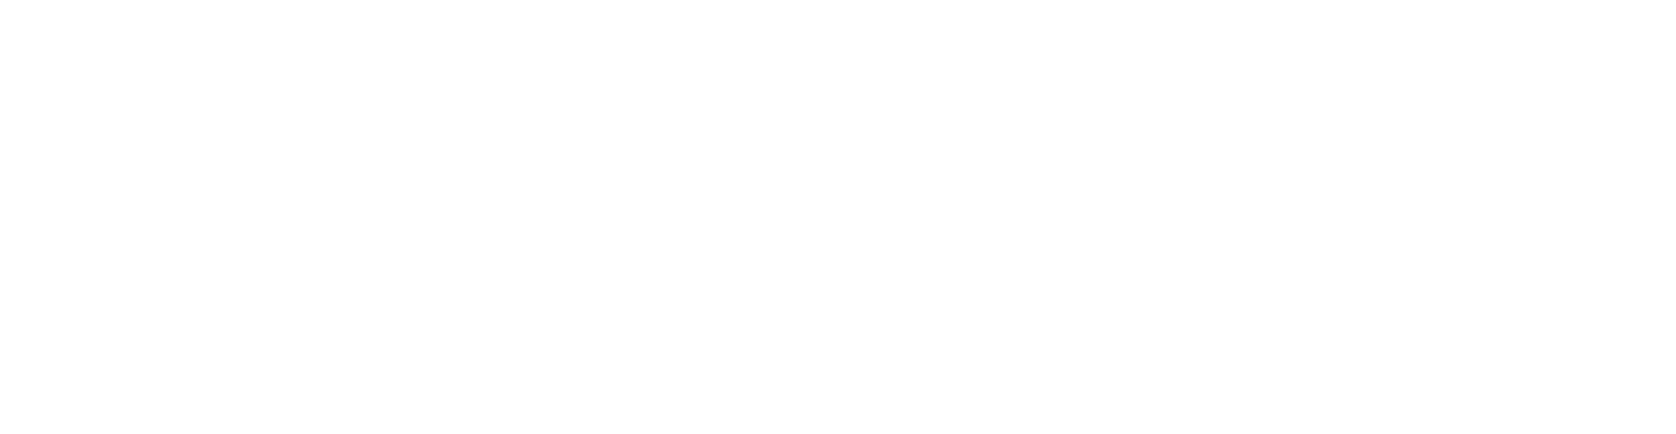 White Grow with Google logo.png